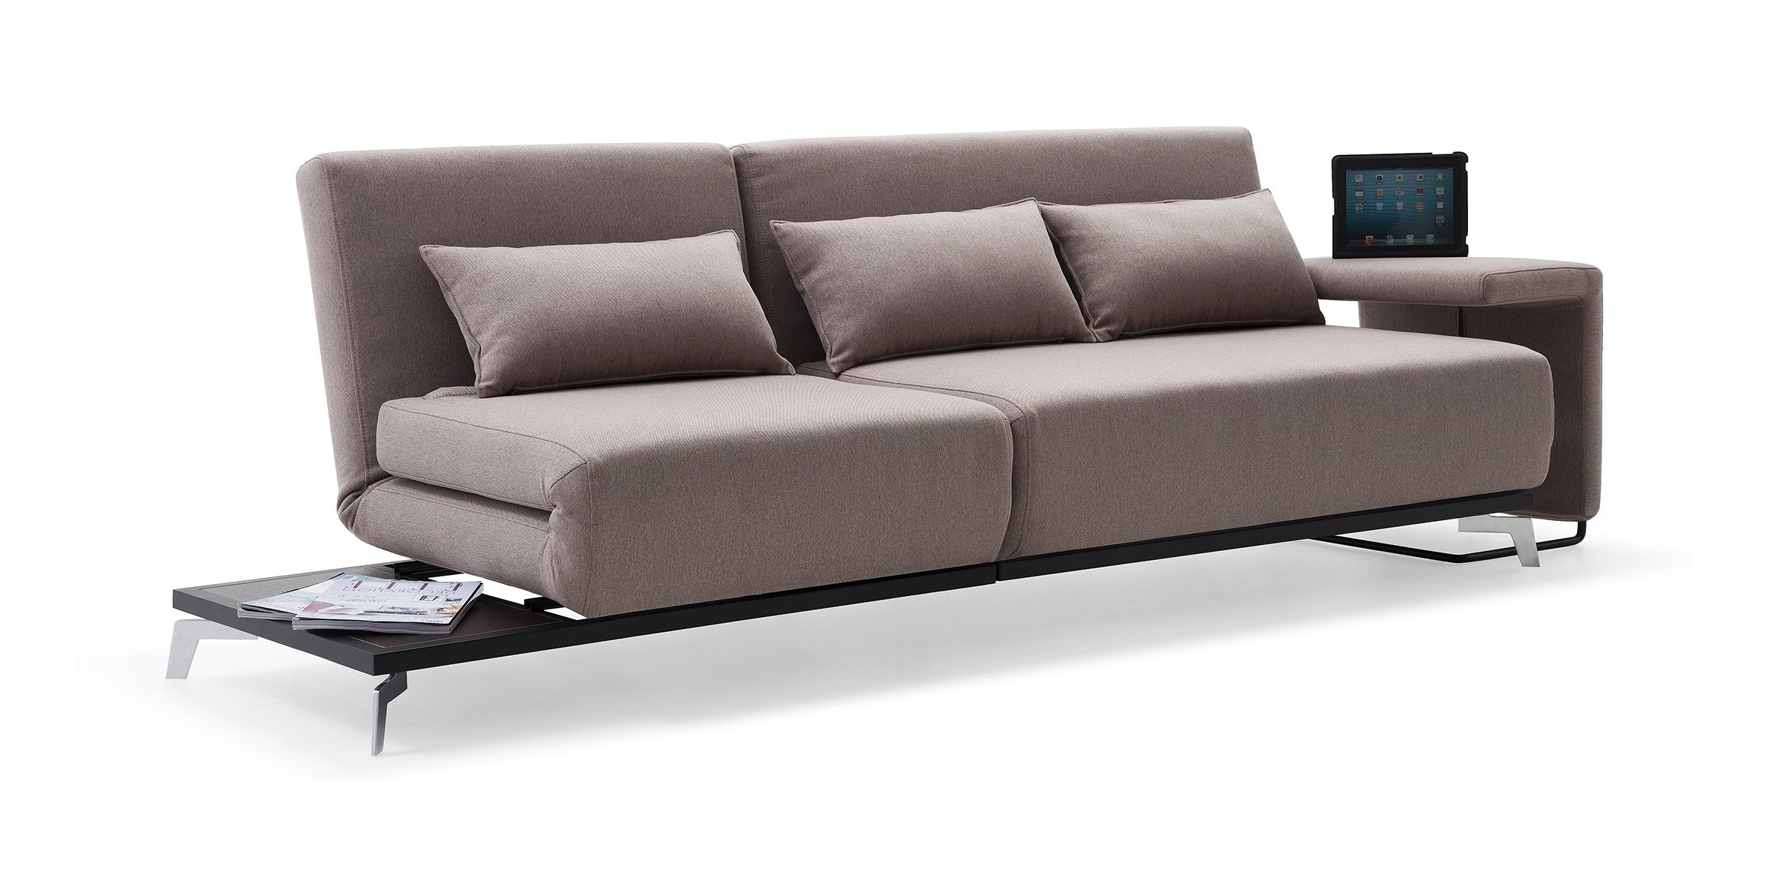 Sofa Chaise Convertible Beds For Trendy Cado Modern Furniture Modern Sofa Bed Jh033 Modern Furniture 1  (View 12 of 15)